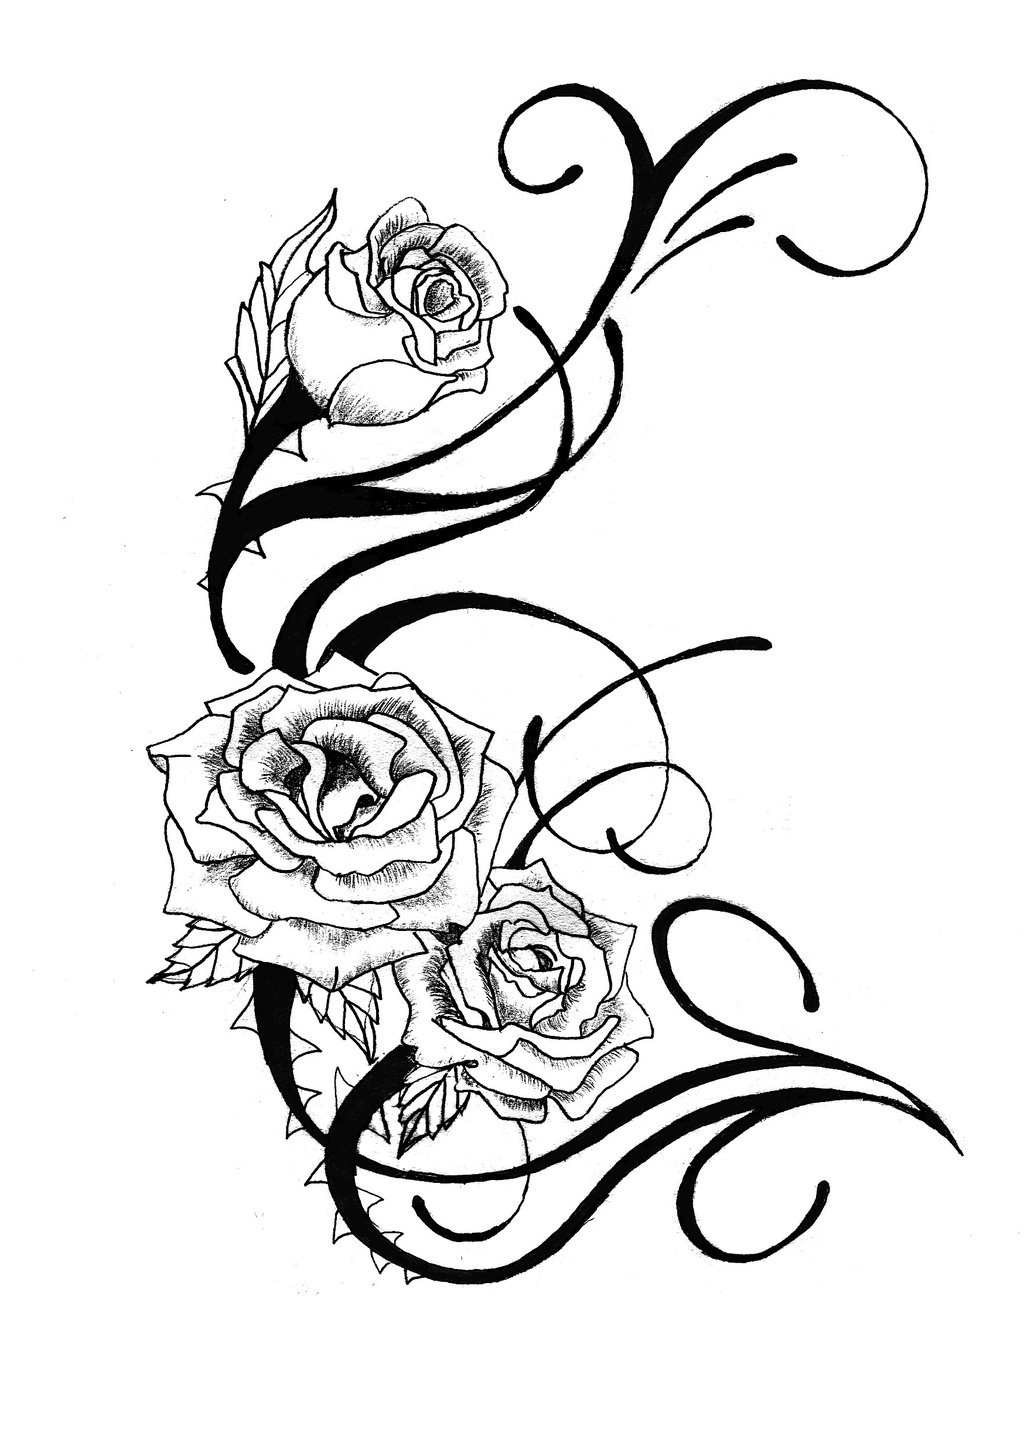 Rose Tattoo Design By Csdesigns83 On Clipart Library Ideas And Designs